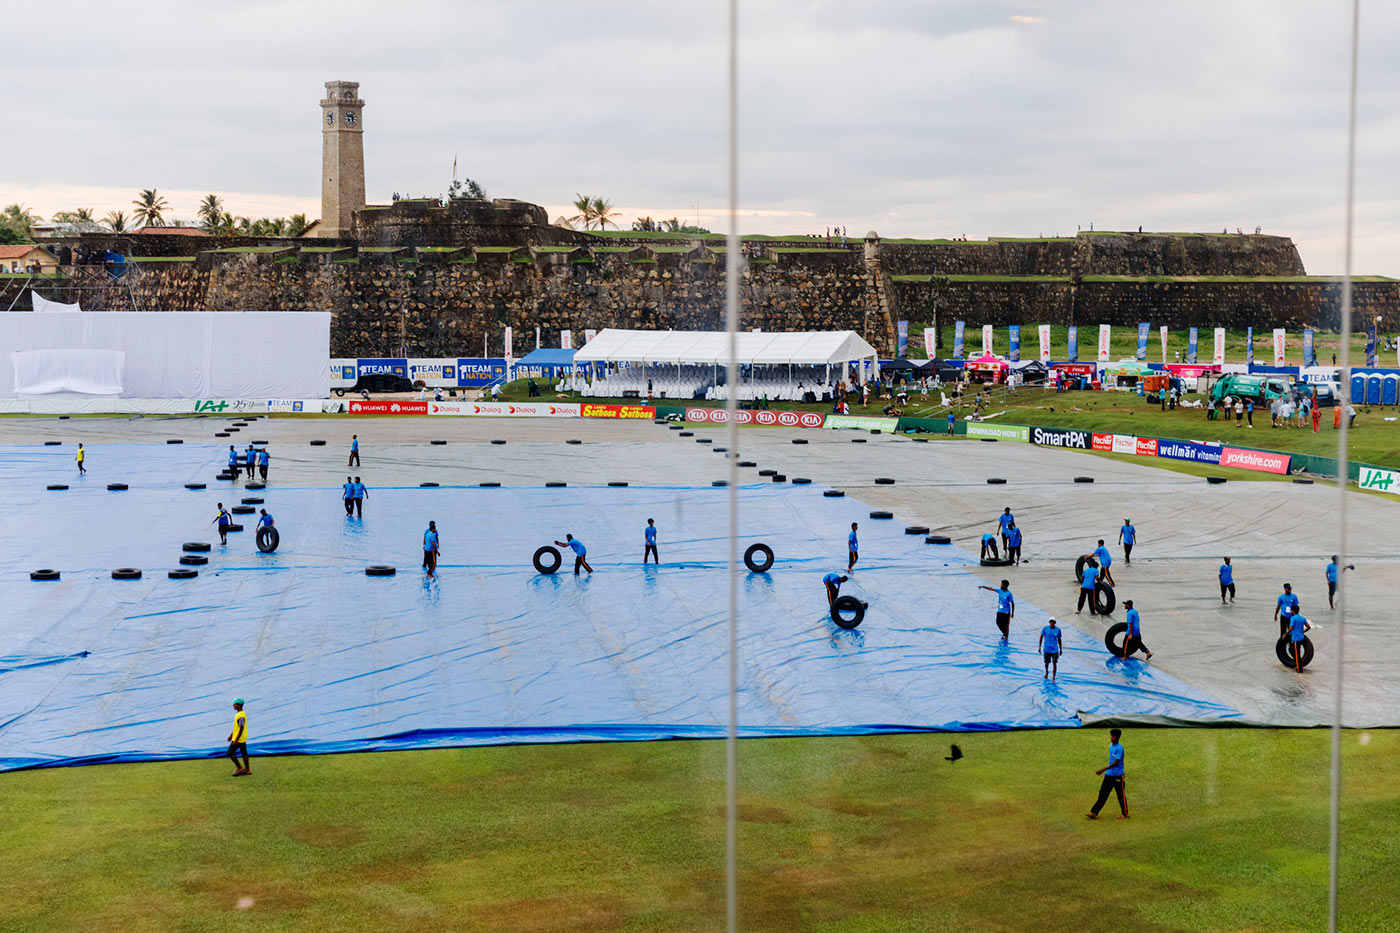 Ground staff pull on the covers to keep the ground dry during a spell of rain